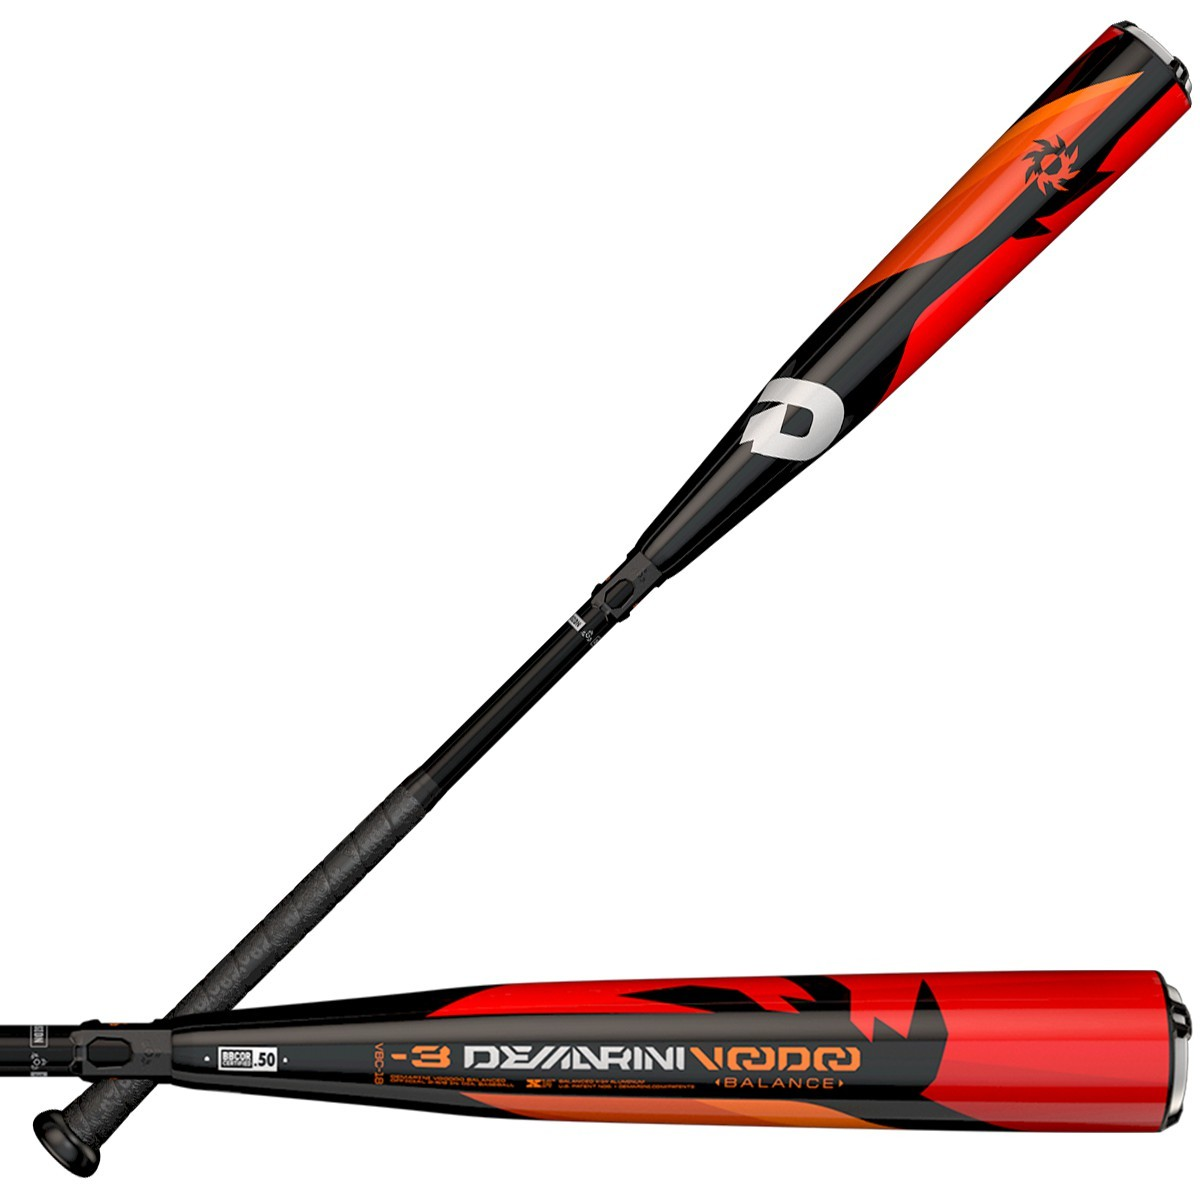 DeMarini Voodoo BBCOR Adult Baseball Bat,VBC-18 33/30, Black/Red 2018 Balanced